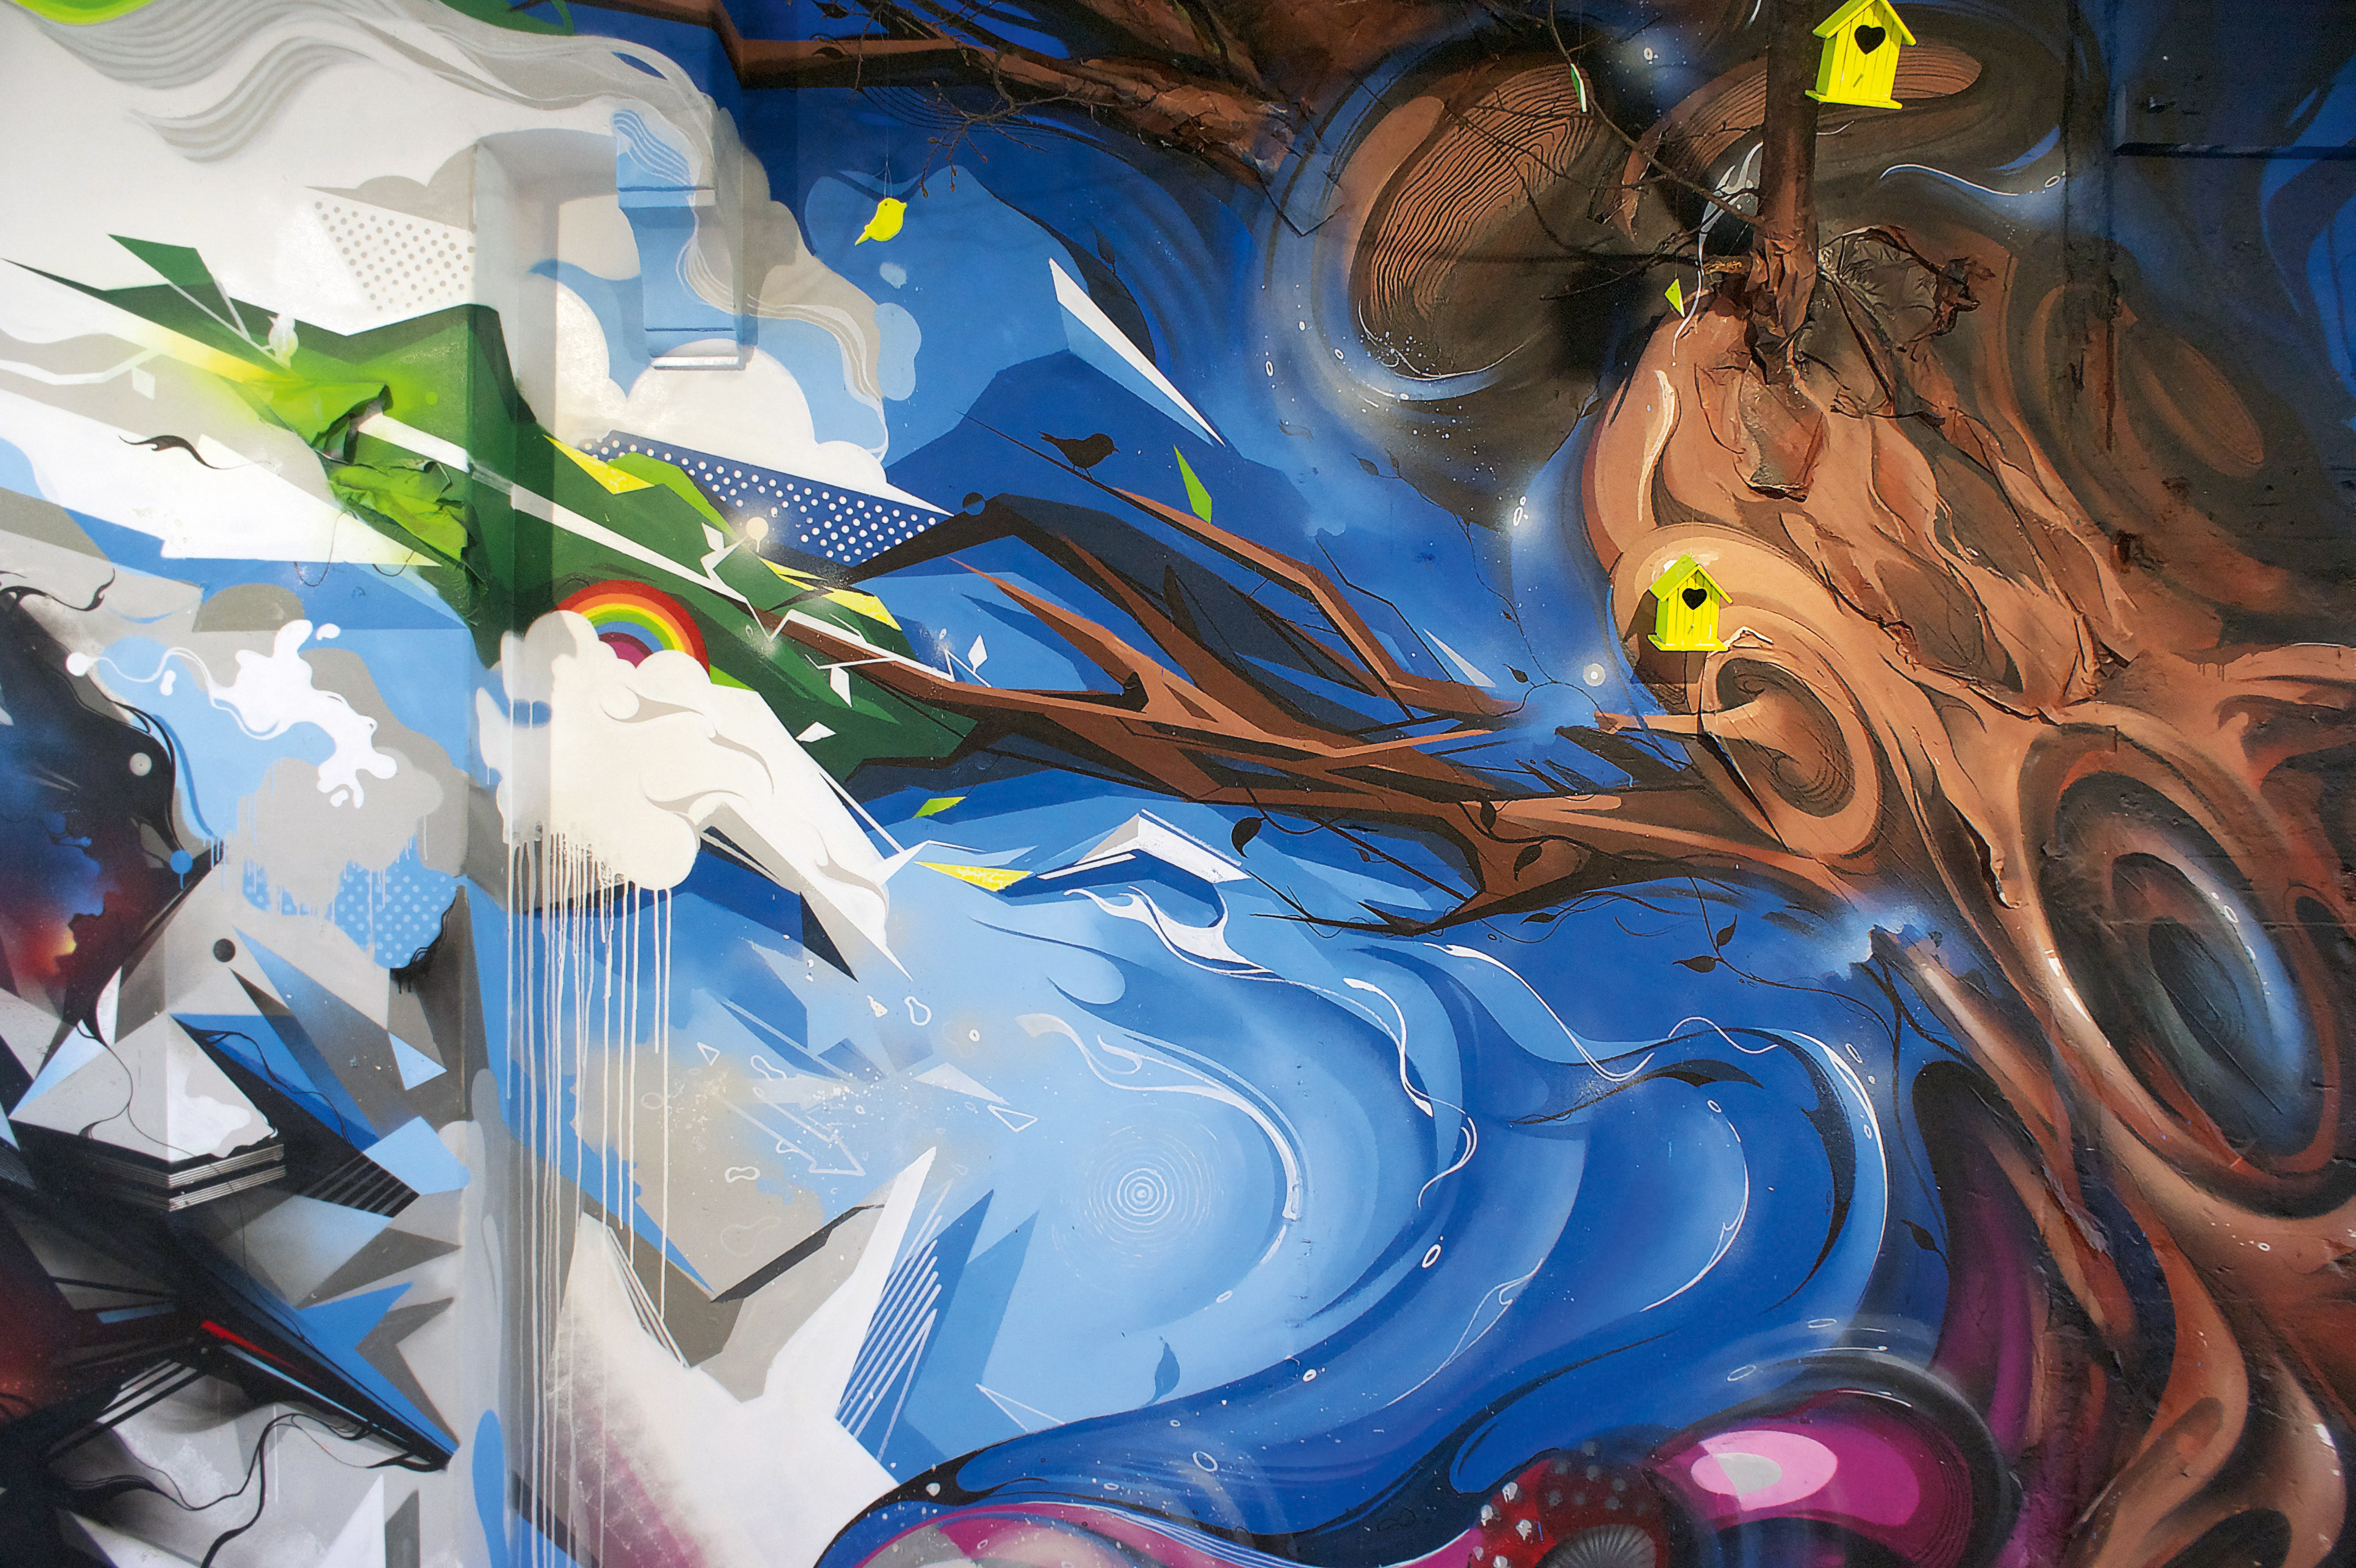 A work by Does - Clashwall amsterdam the netherlands mural detail